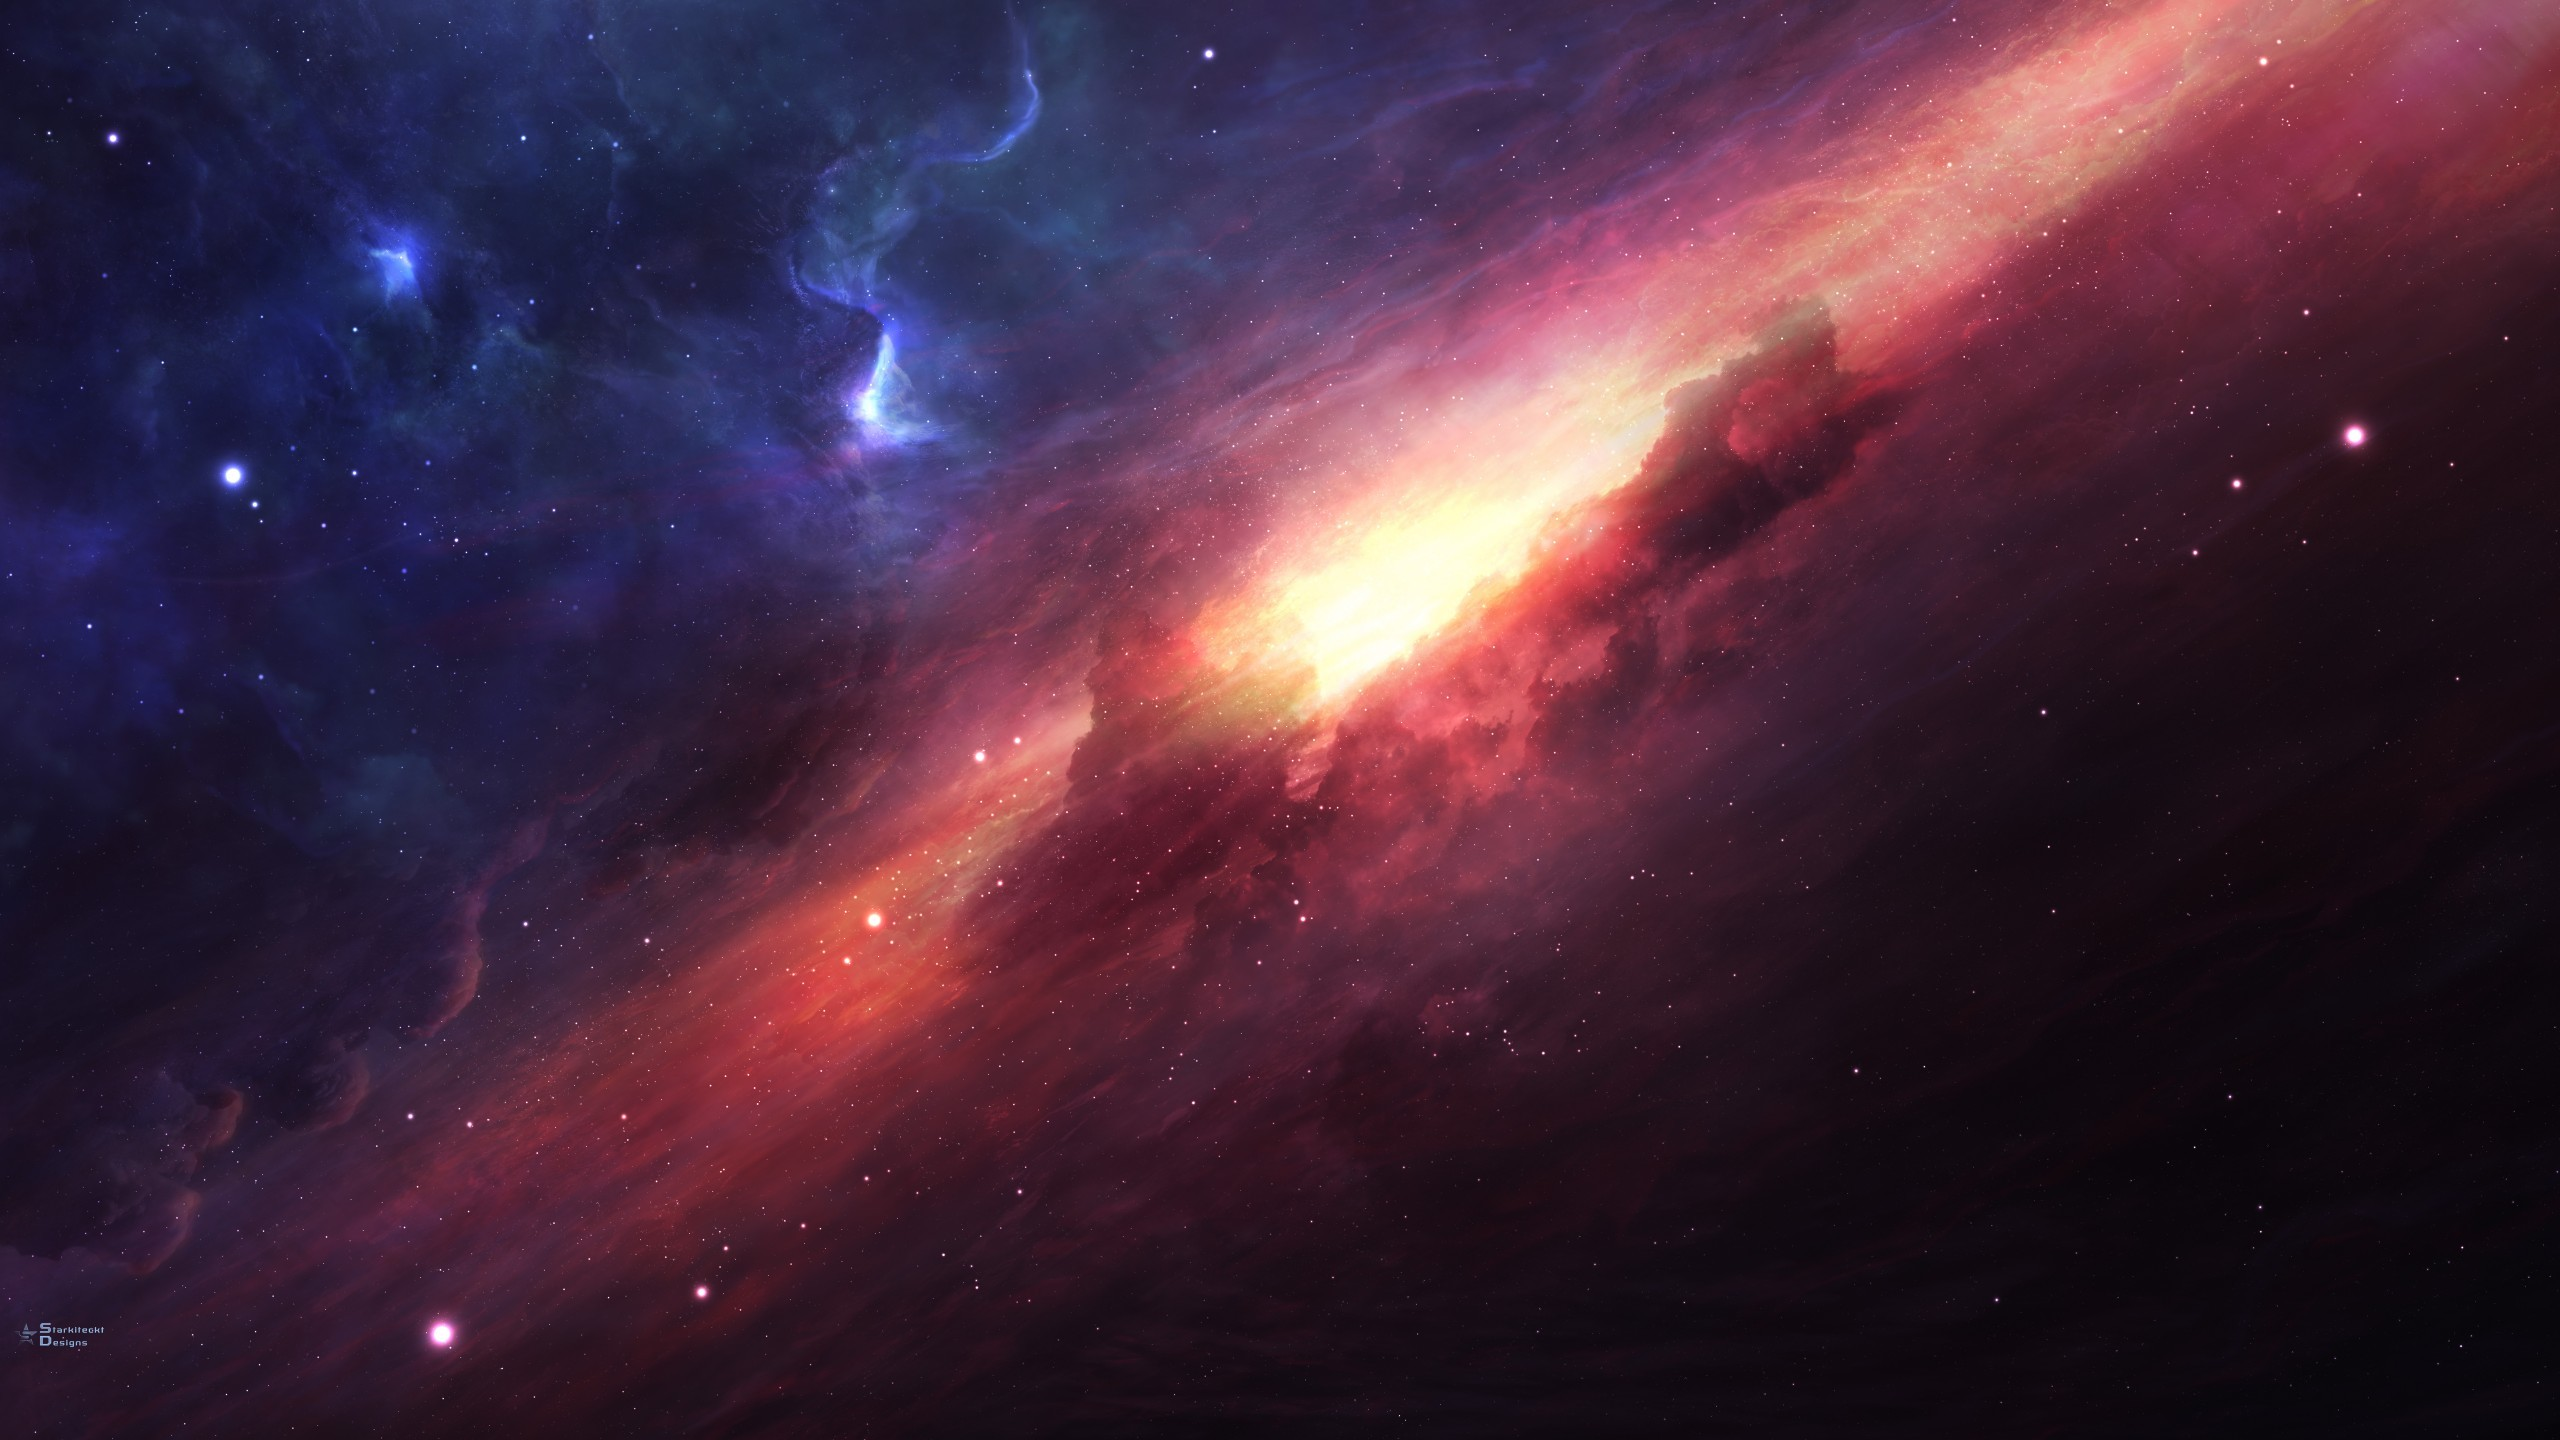 4k ultra hd space wallpaper (32+ images)